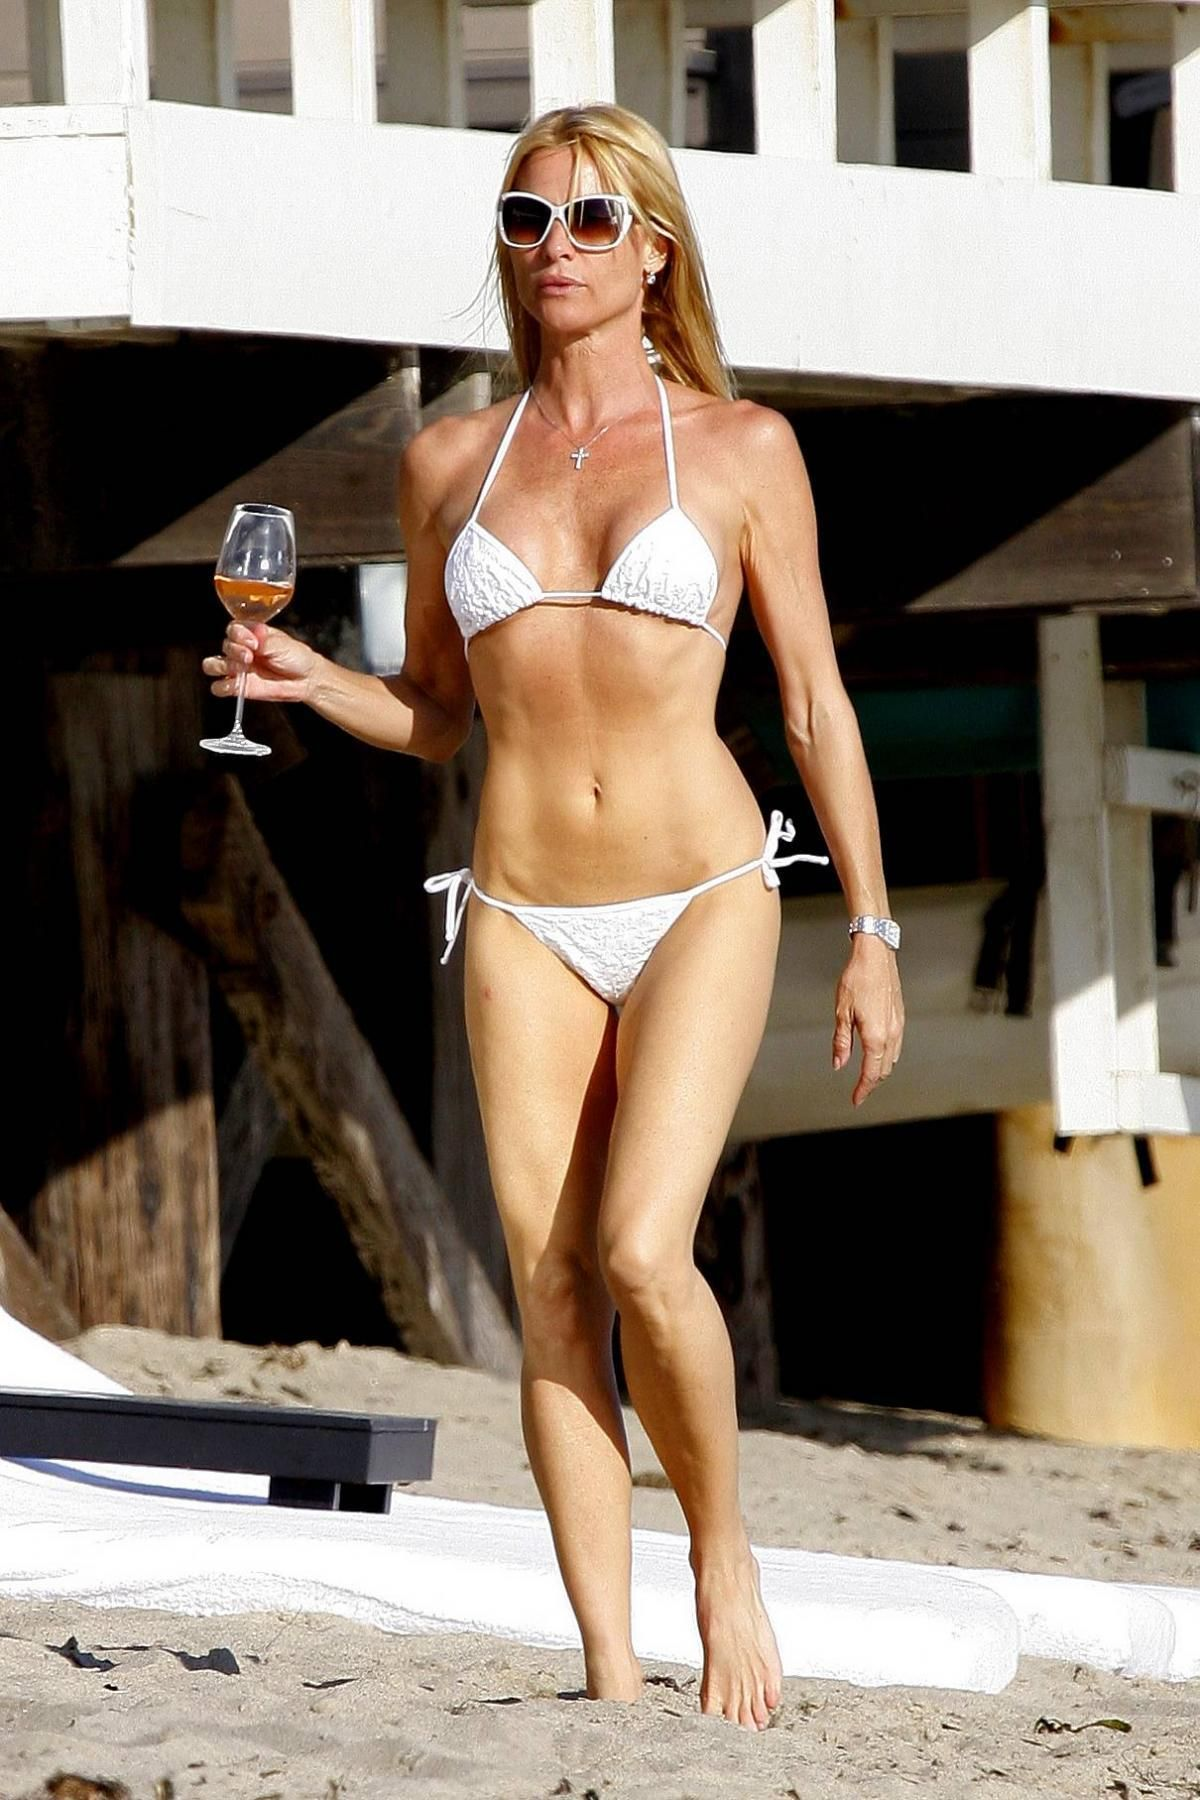 Nicollette Sheridan (born 1963) Nicollette Sheridan (born 1963) new foto